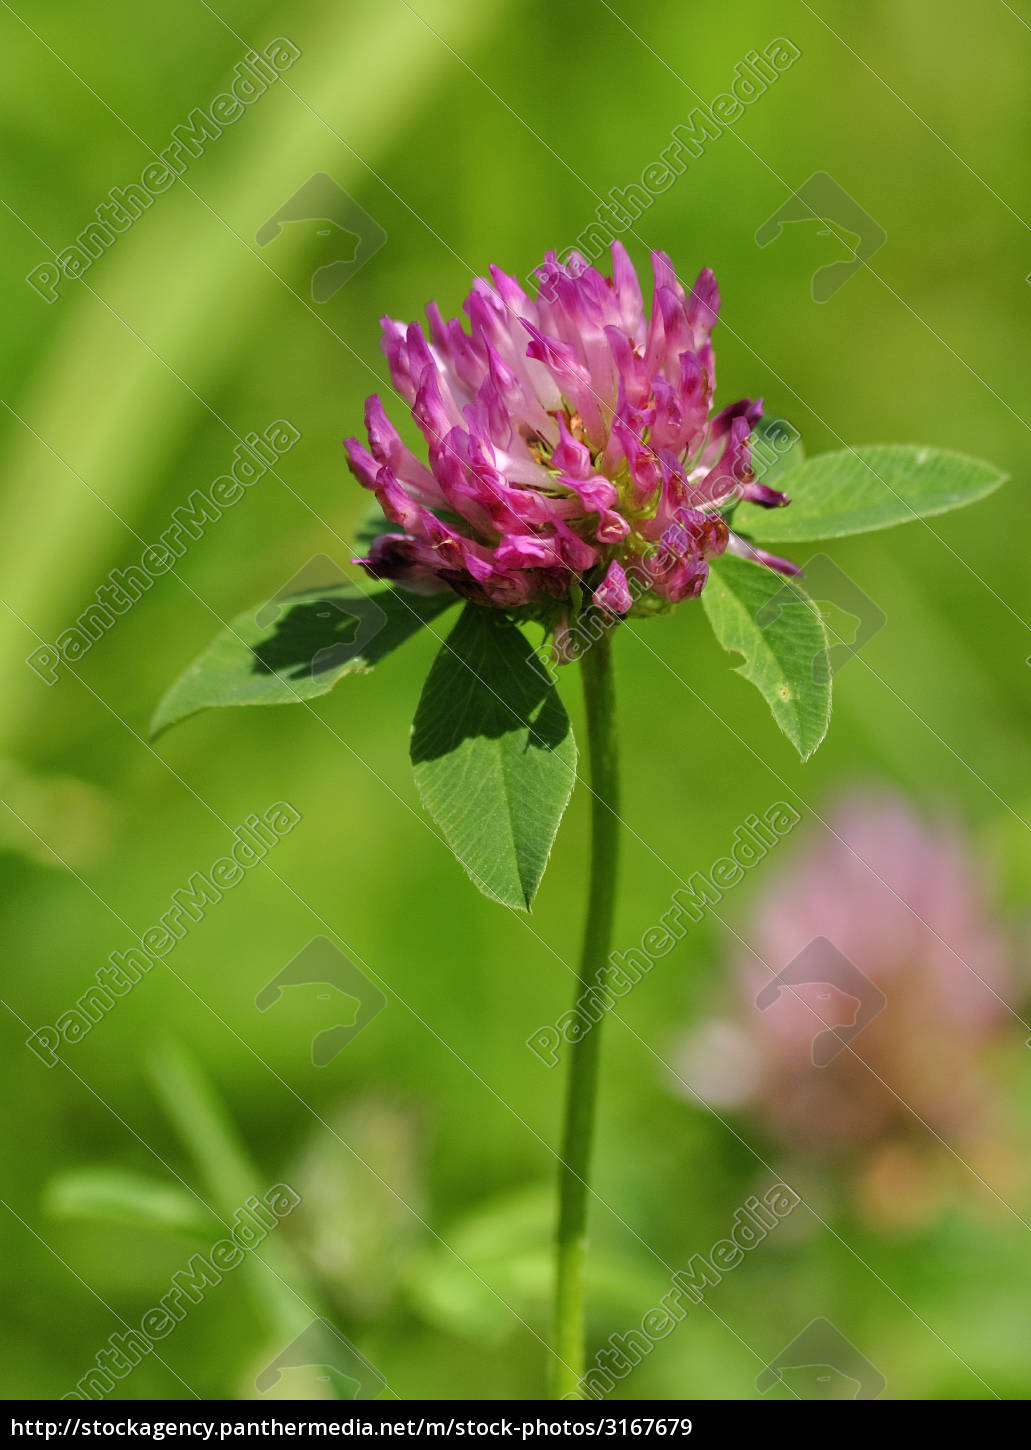 red, clover - 3167679